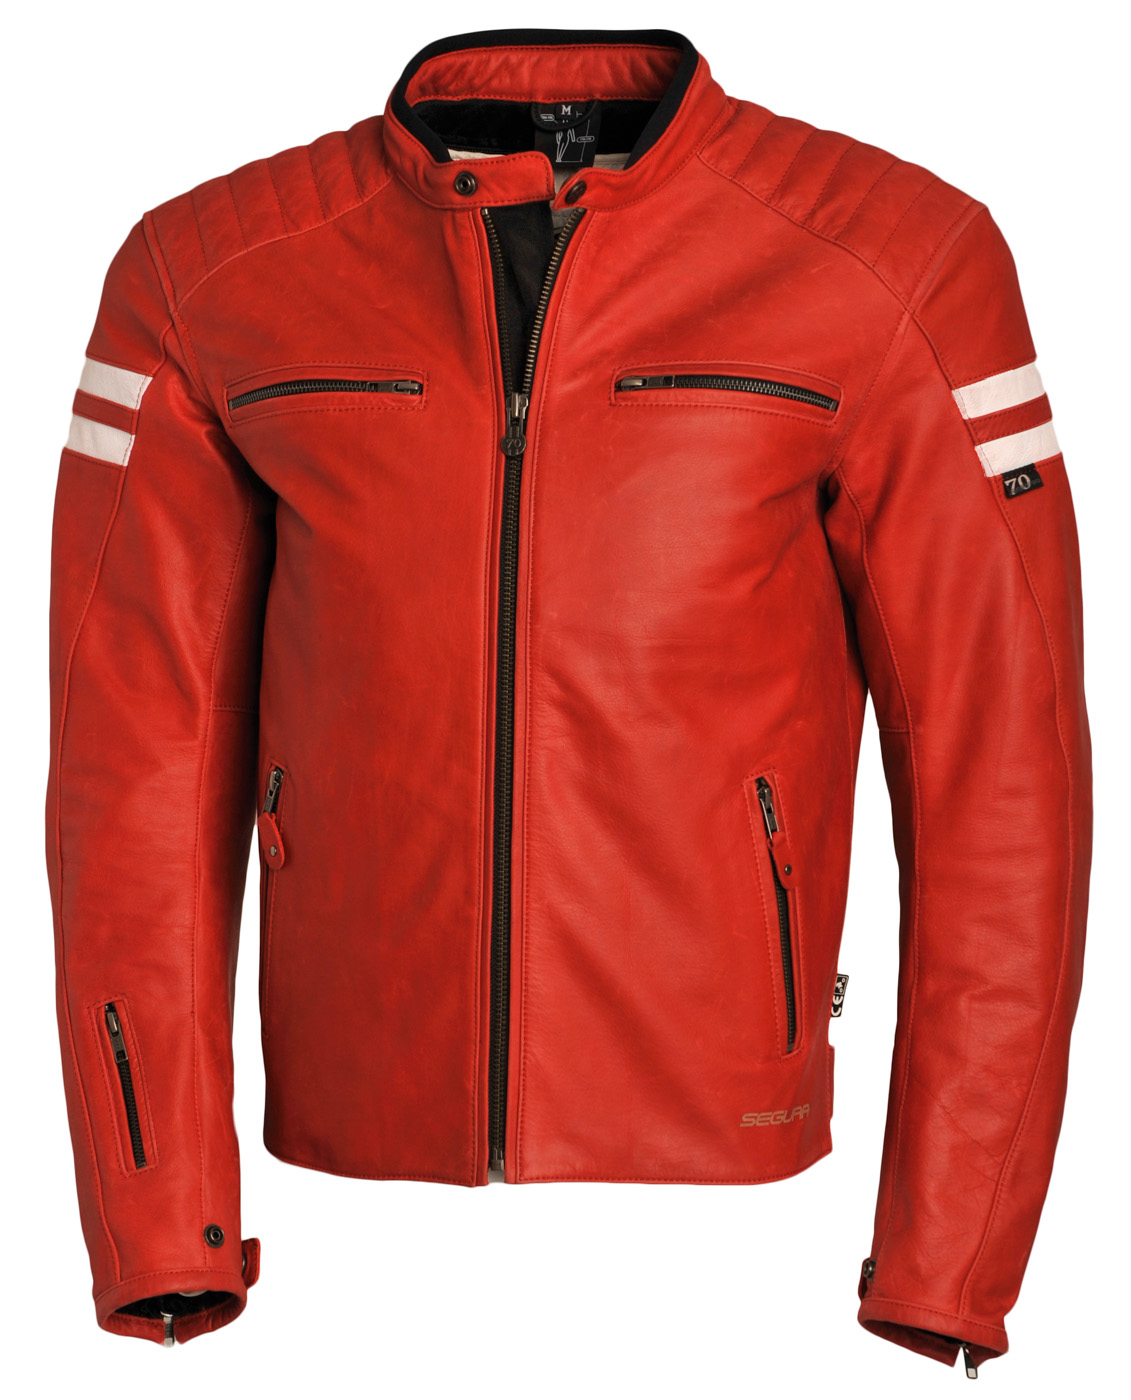 Photo   Segura Blouson Retro rouge blanc, tailles S-4XL, 399,90 €. 7cbf322762be